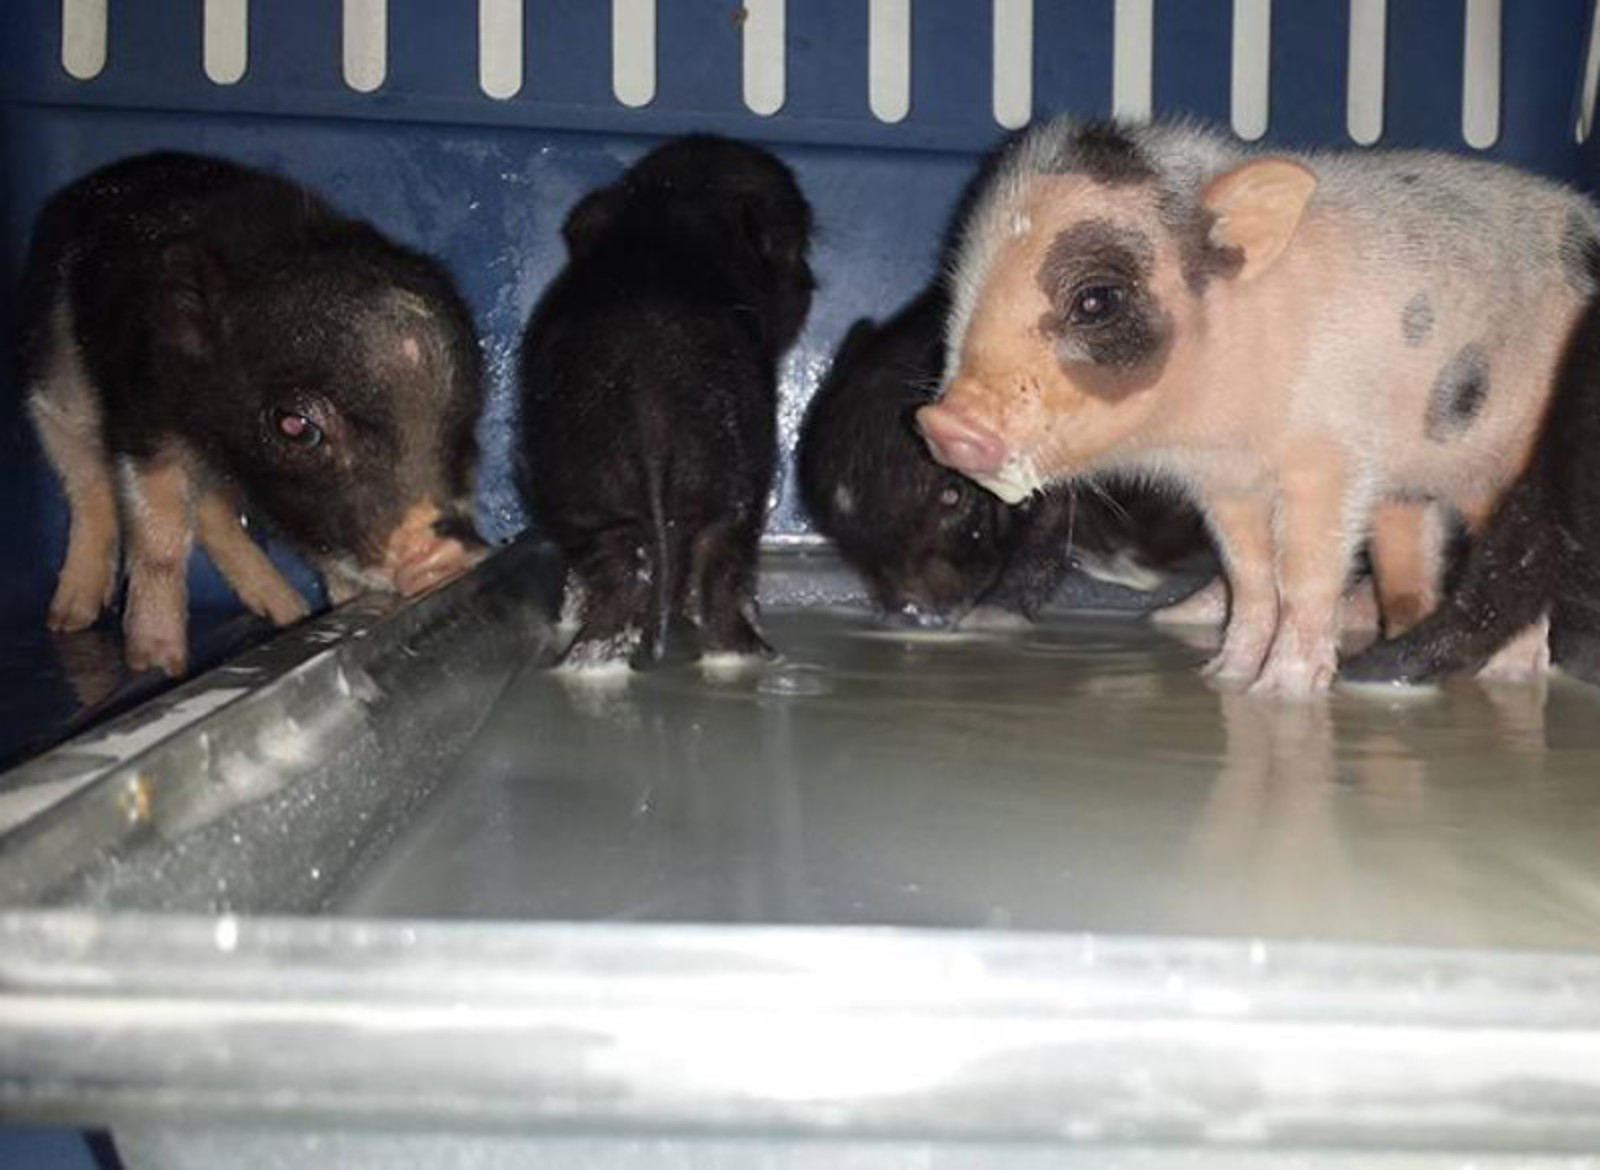 OMG Piglets! Orphan Oinkers Find New Home at PIGS Animal Sanctuary